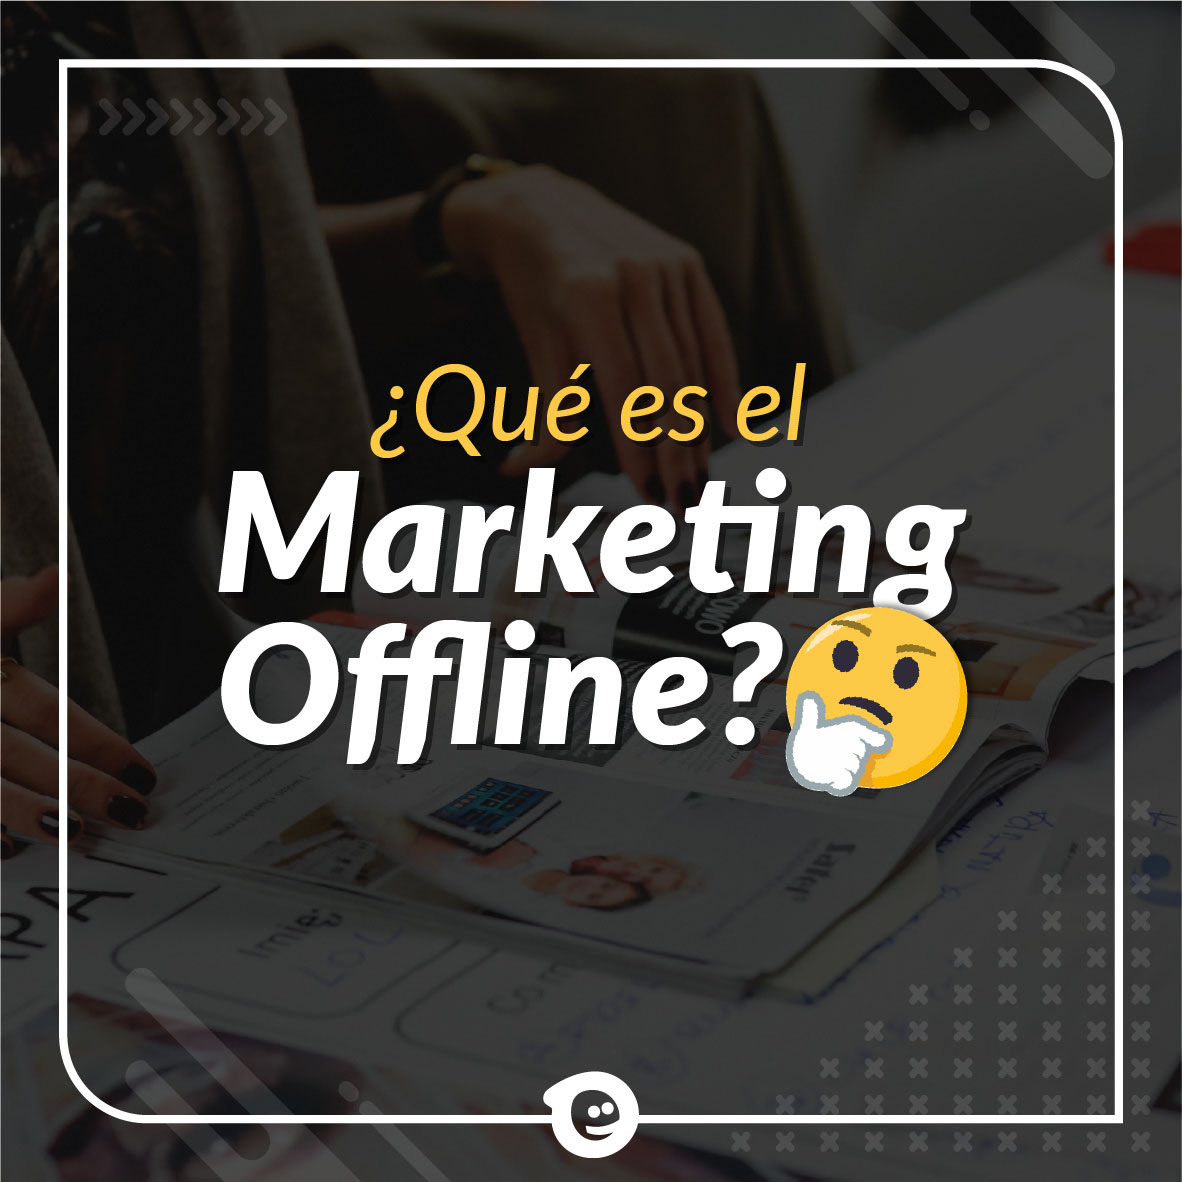 conoce el Marketing offline